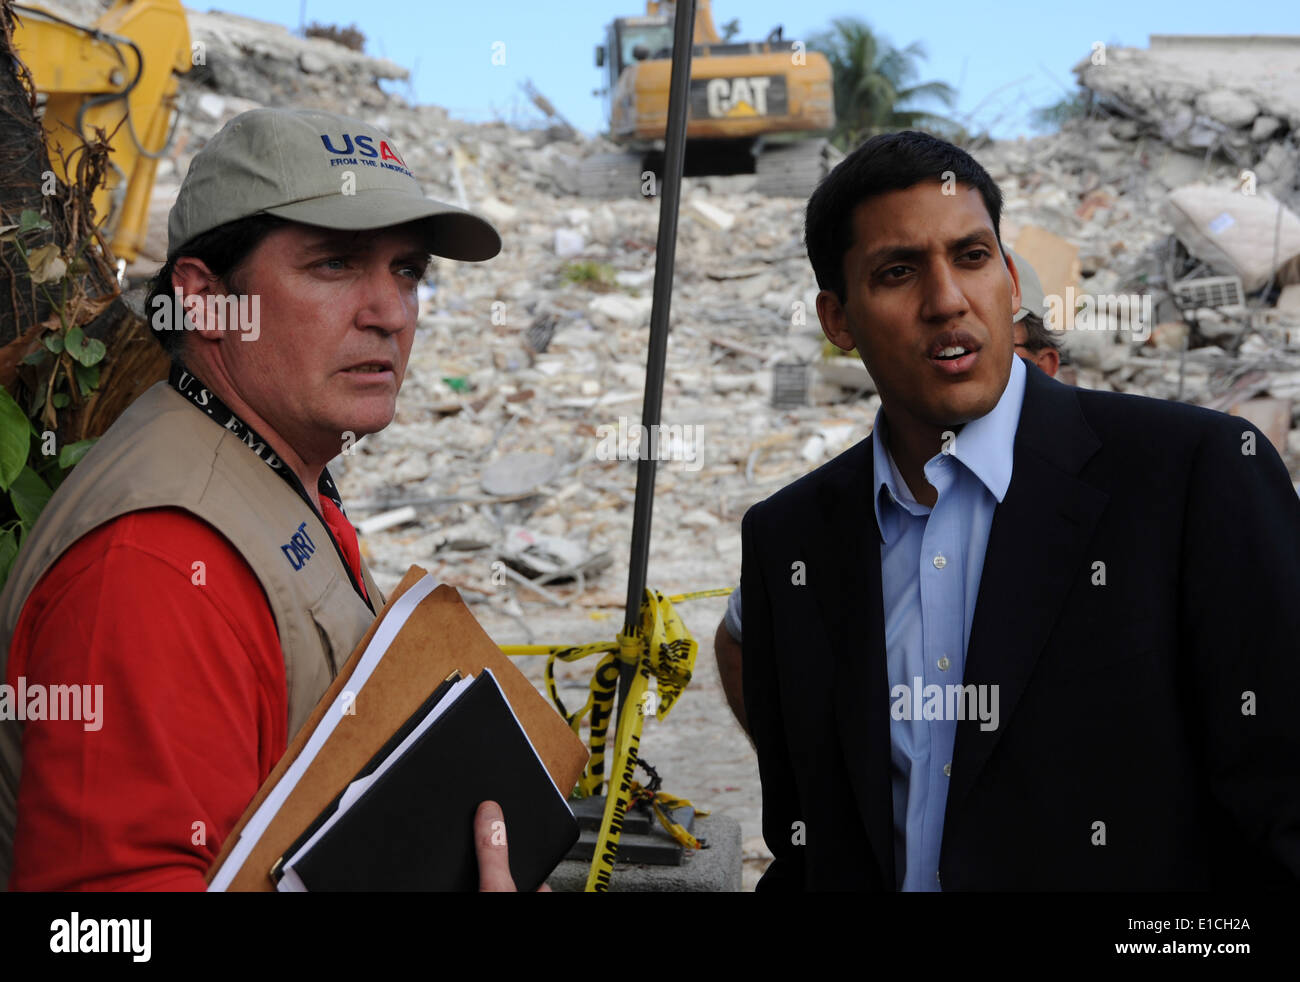 U.S. Agency for International Development (USAID) Administrator Rajiv Shah, right, and Disaster Assistance and Response Team Le - Stock Image